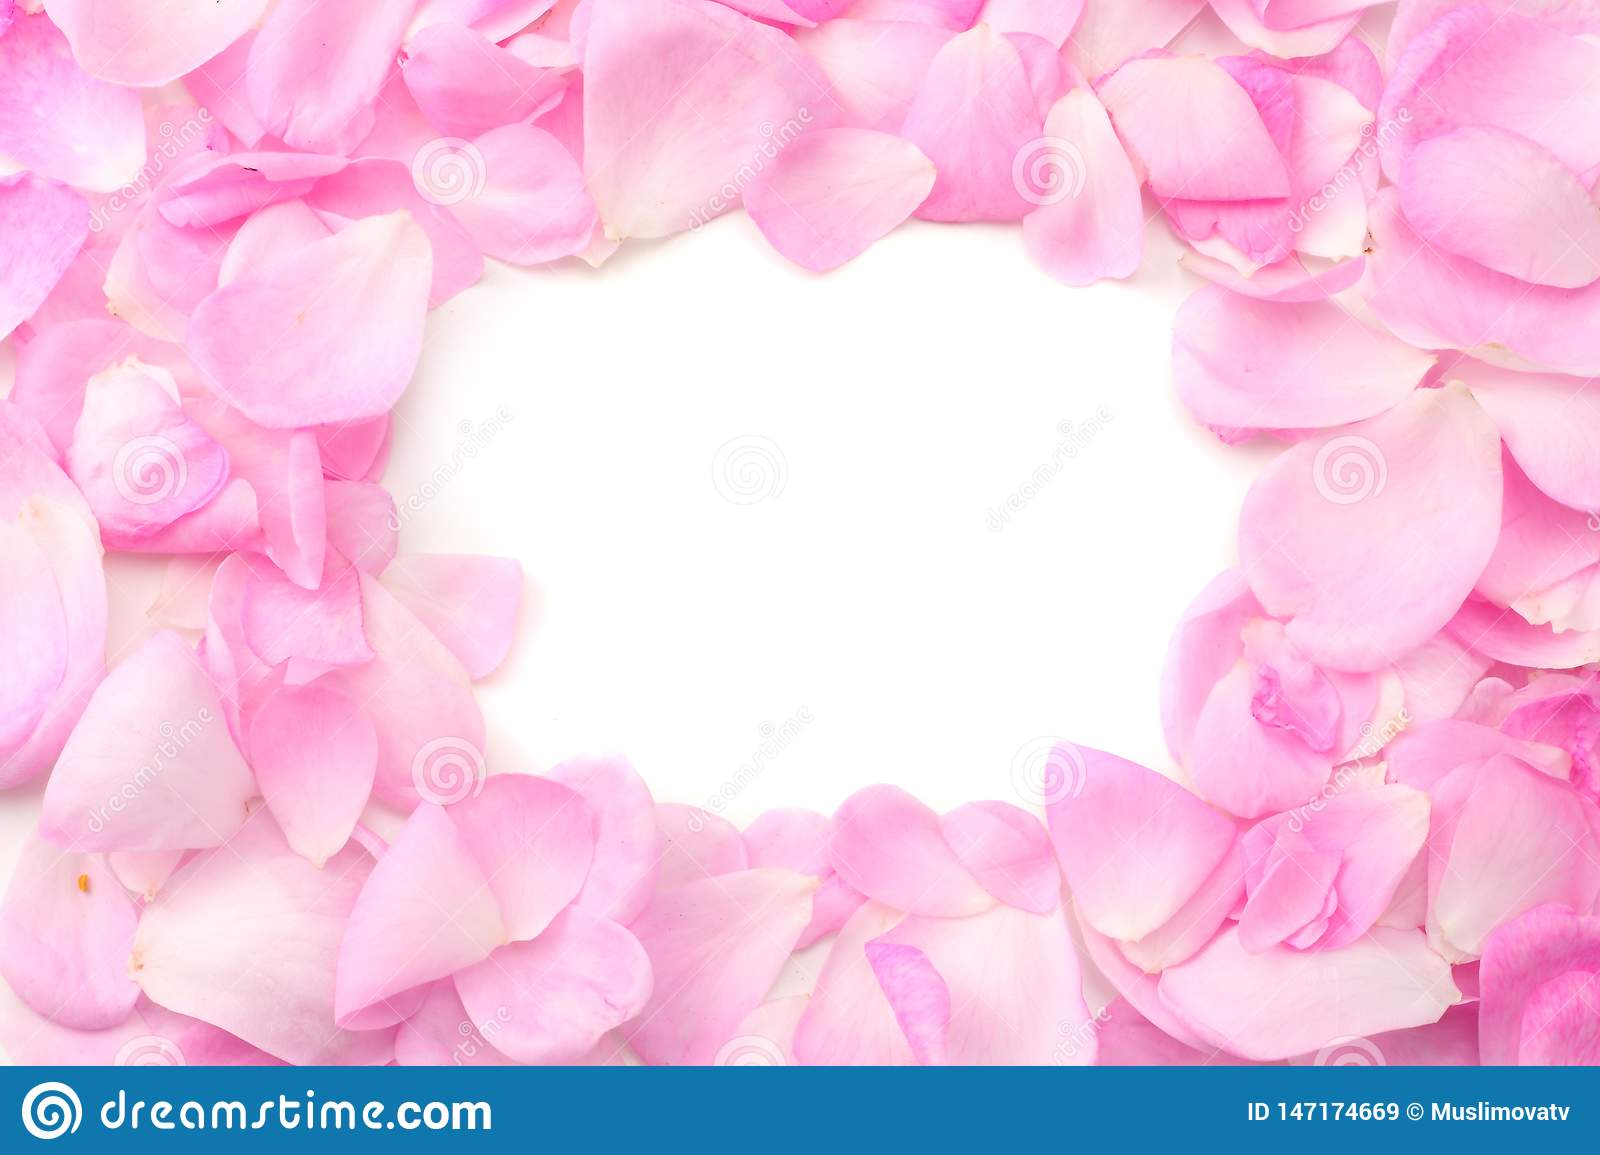 pink rose petals isolated on white background. top view